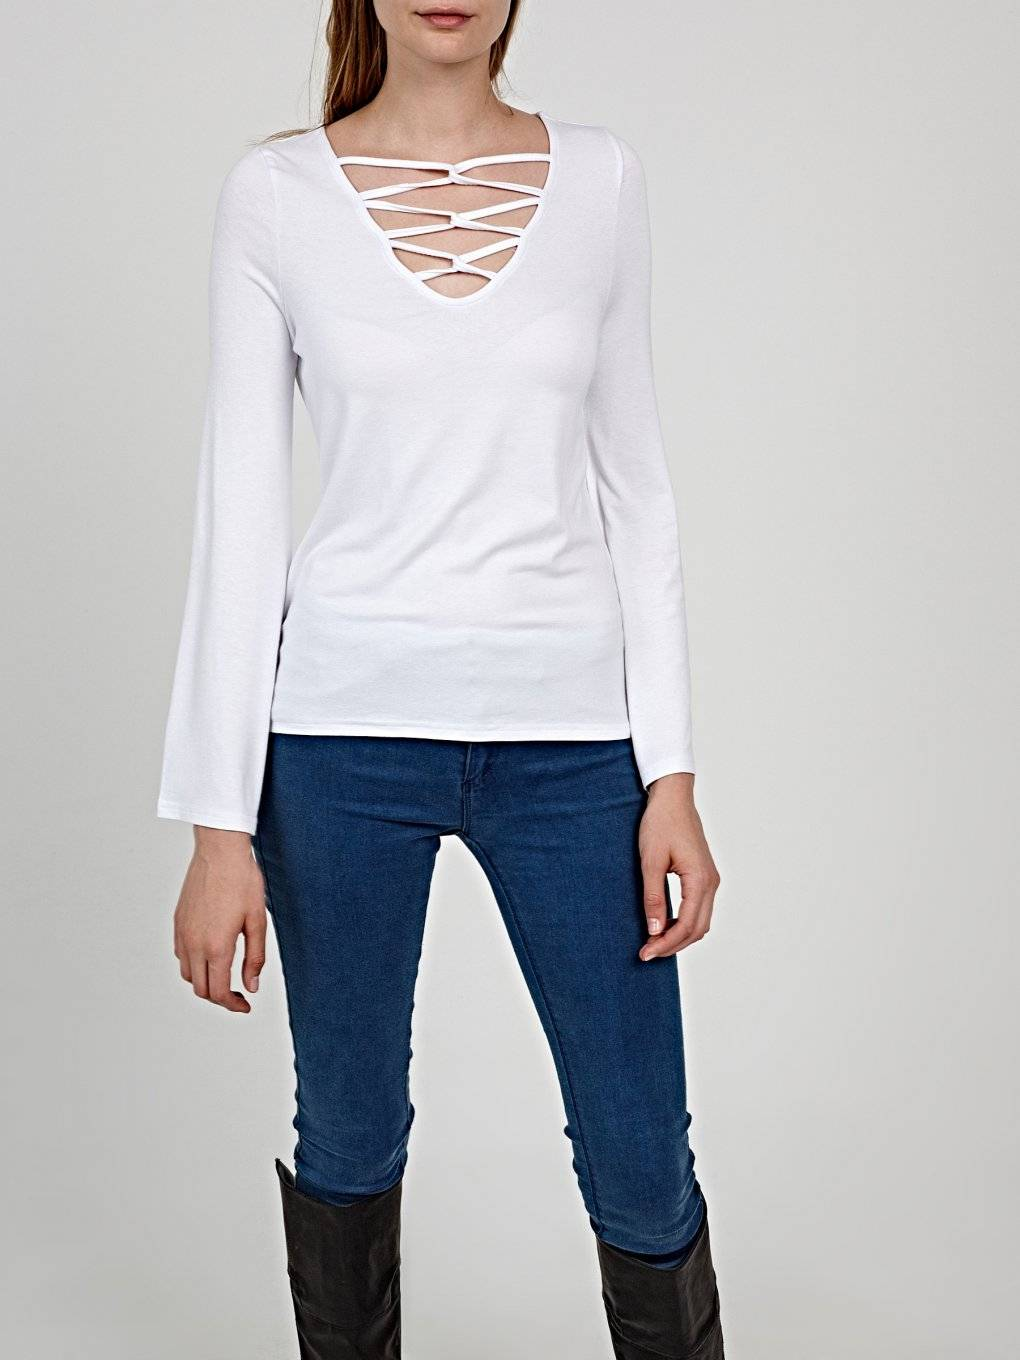 Lace-up top